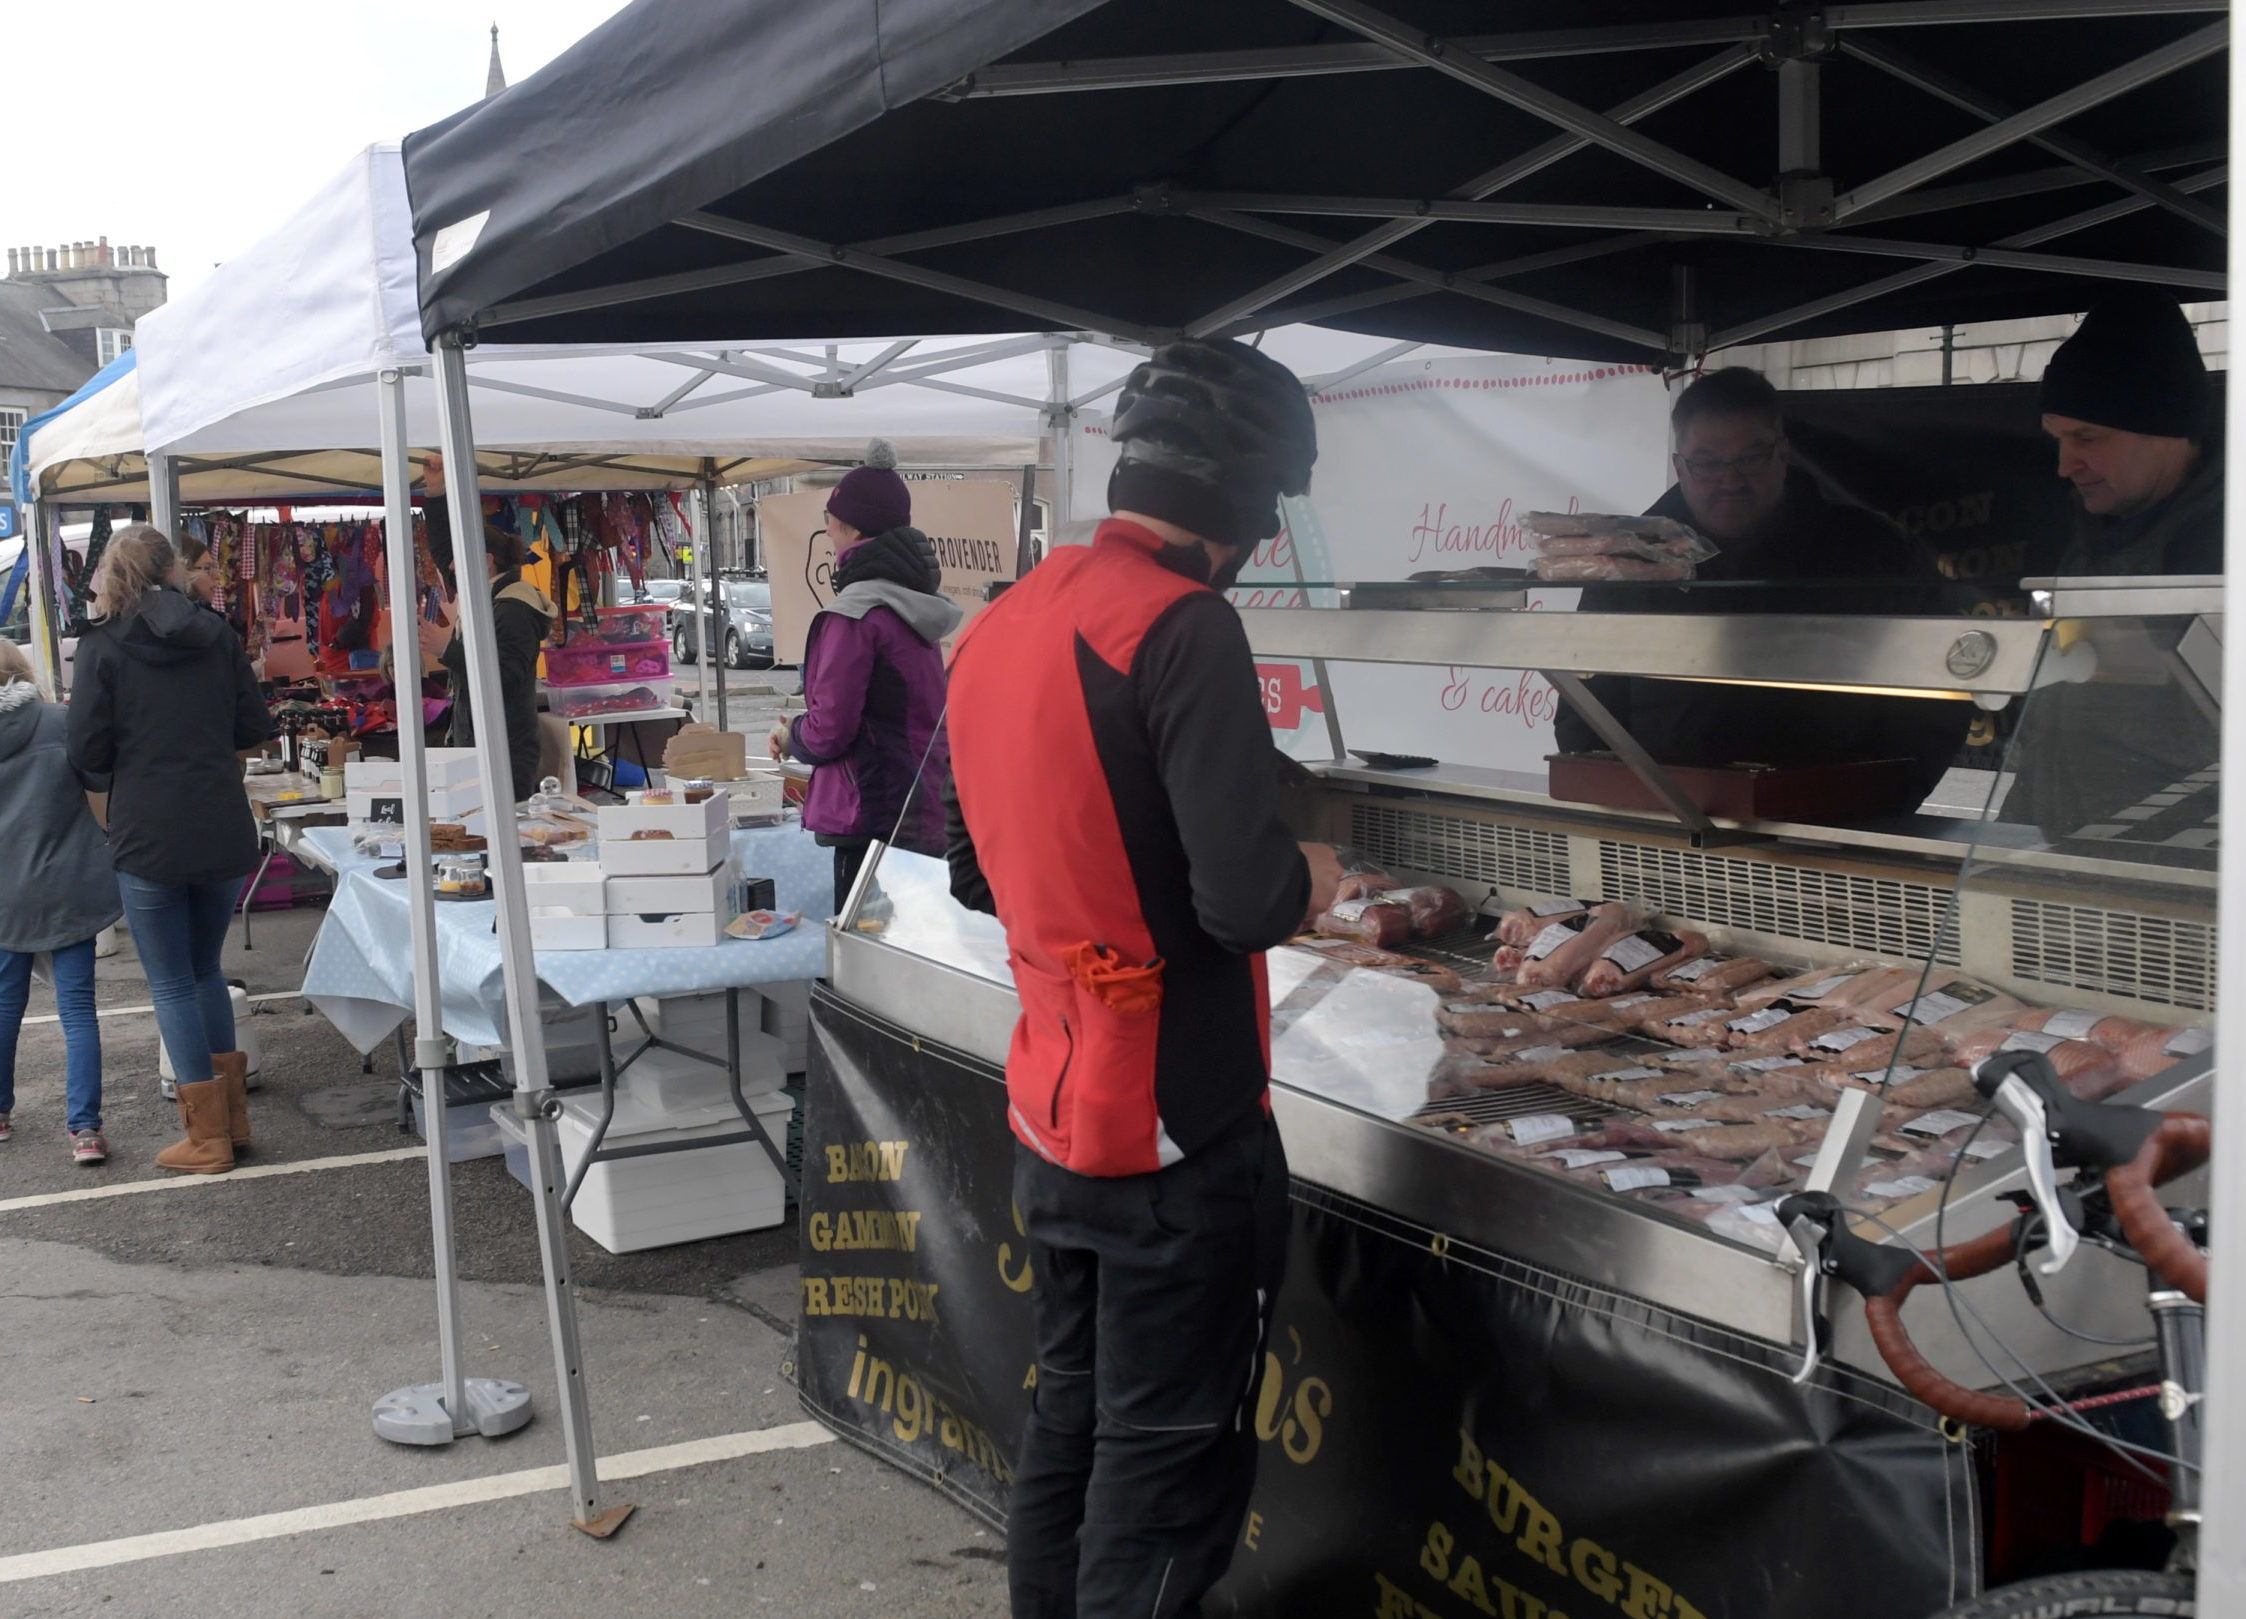 A farmers market will be held in Aboyne next Saturday